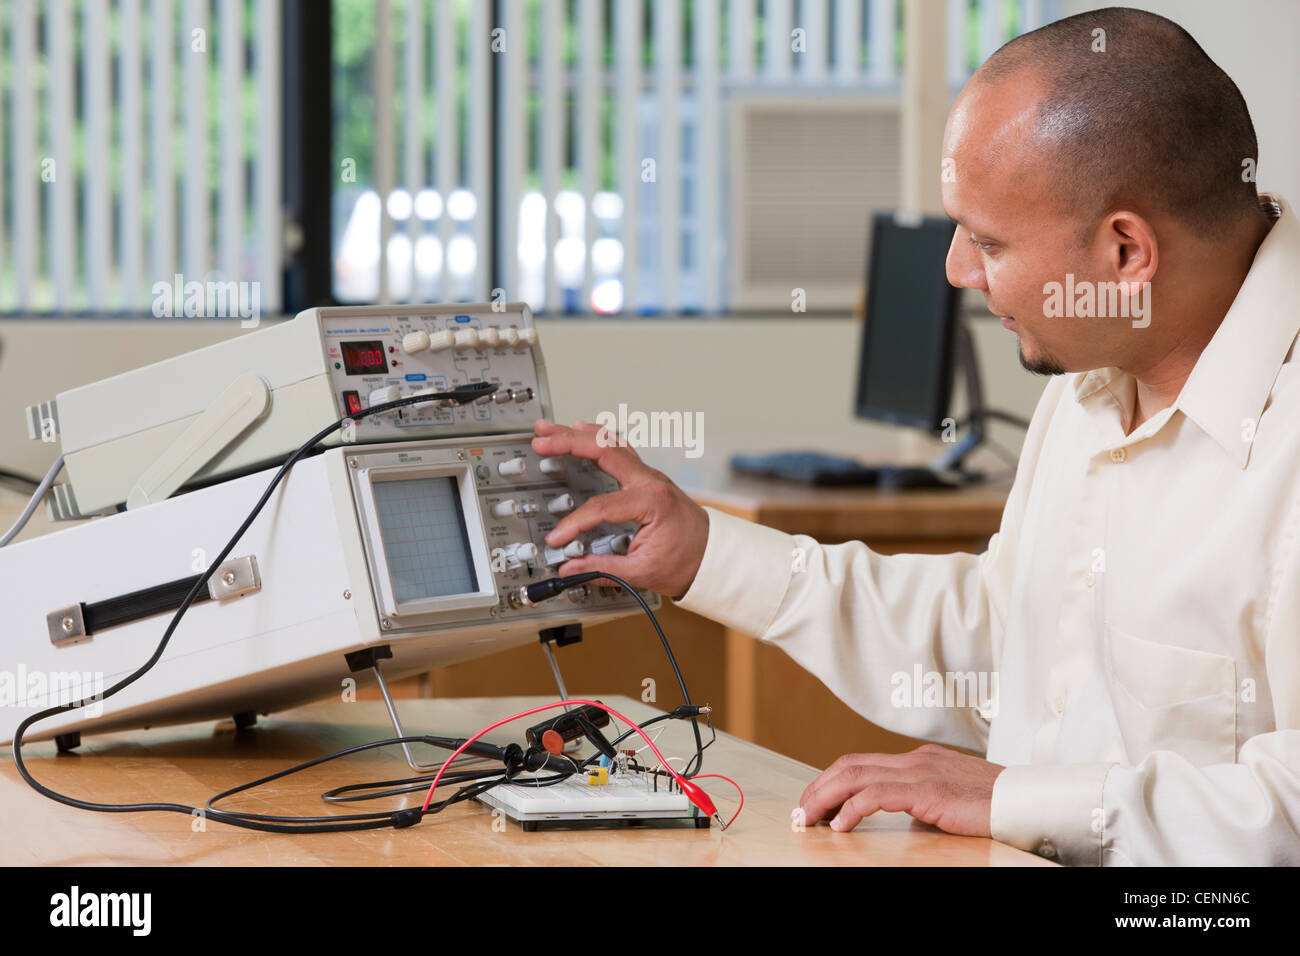 Hispanic engineering student adjusting signal levels on oscilloscope and function generator in a classroom - Stock Image